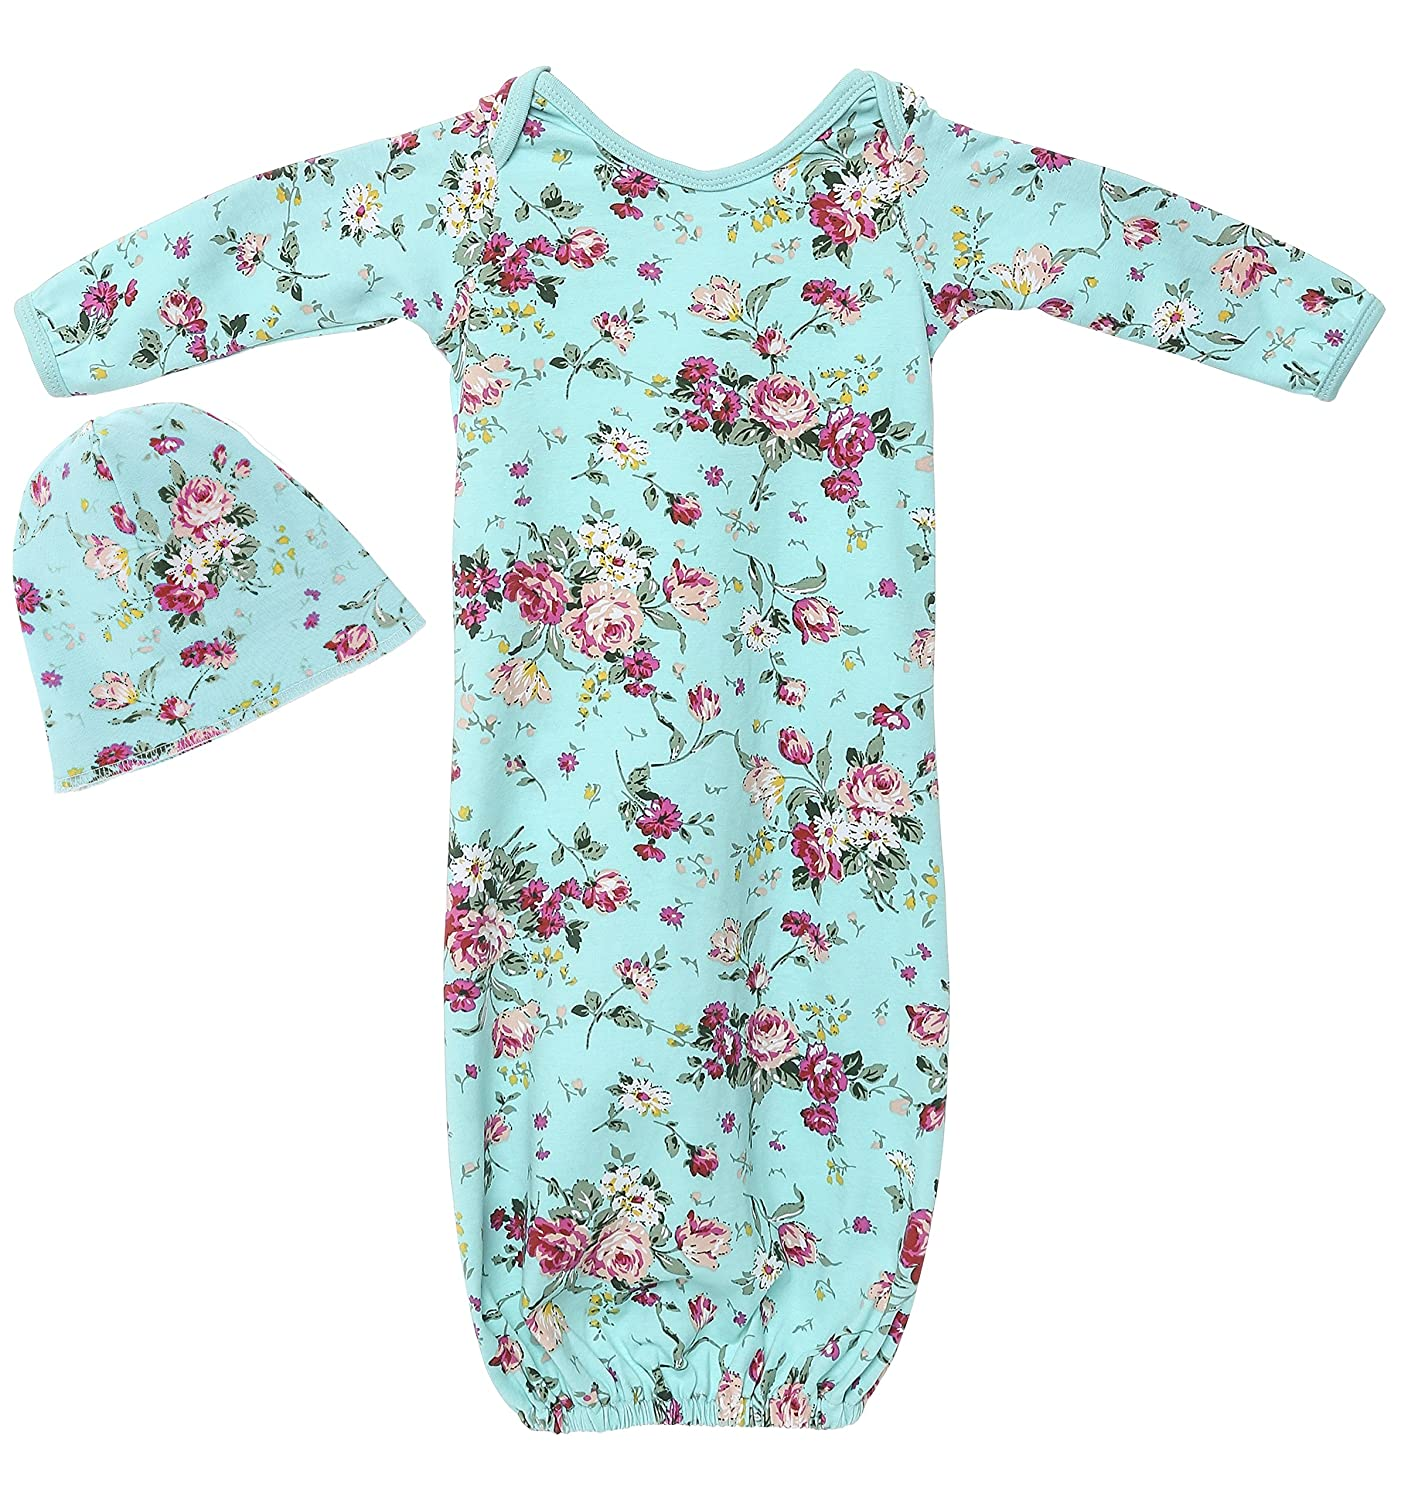 PoshPeanut Infant Baby Gown Set Newborn Girl's Floral Cotton Layette with Beanie Turquoise Posh Peanut